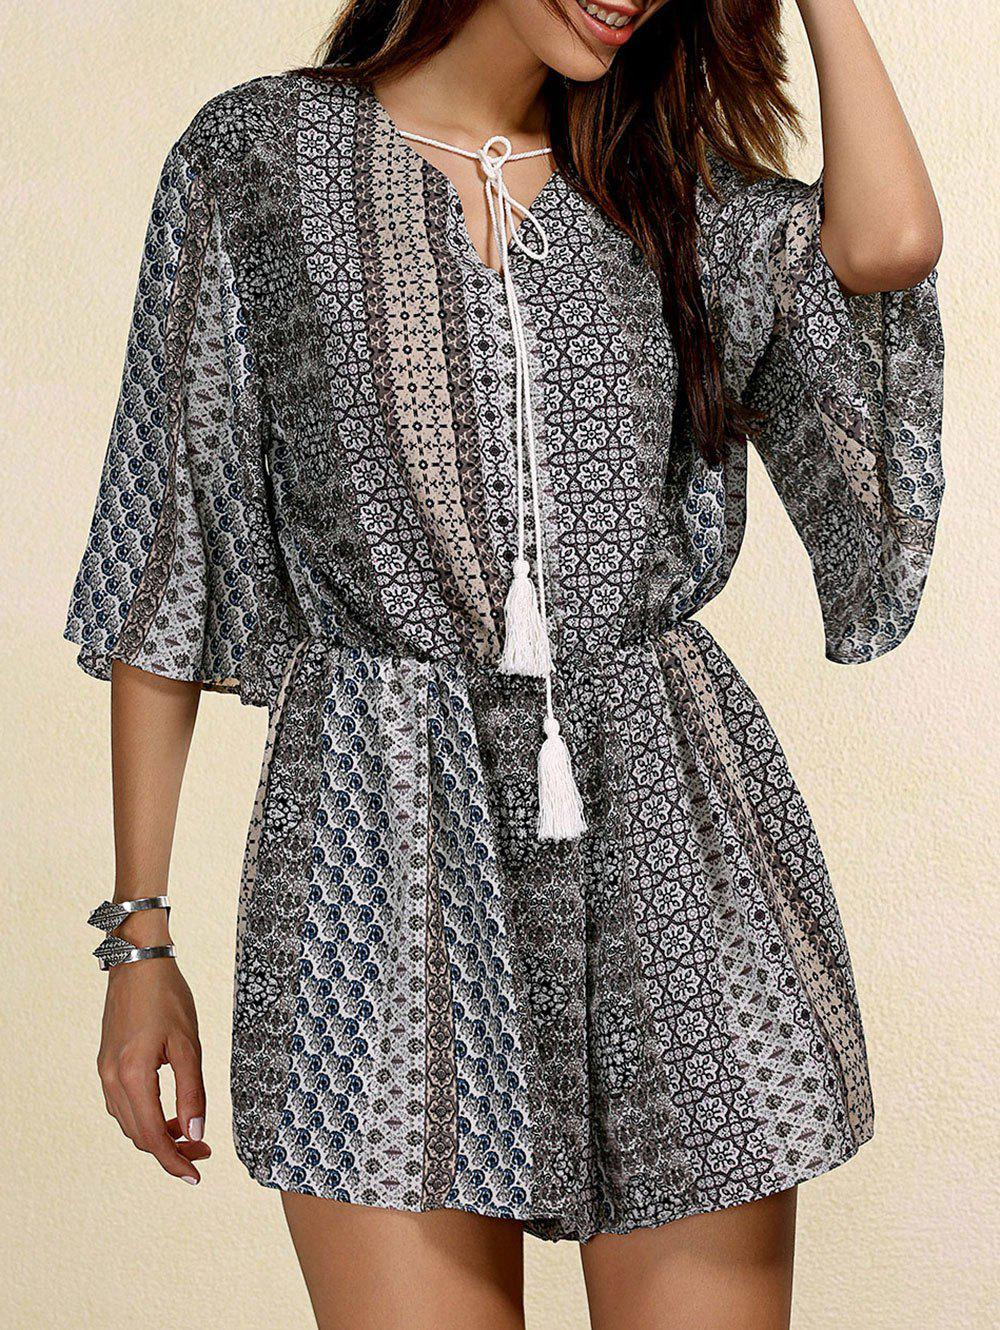 Ethnic Women's Jewel Neck Bell Sleeves Printed Romper - GRAY ONE SIZE(FIT SIZE XS TO M)